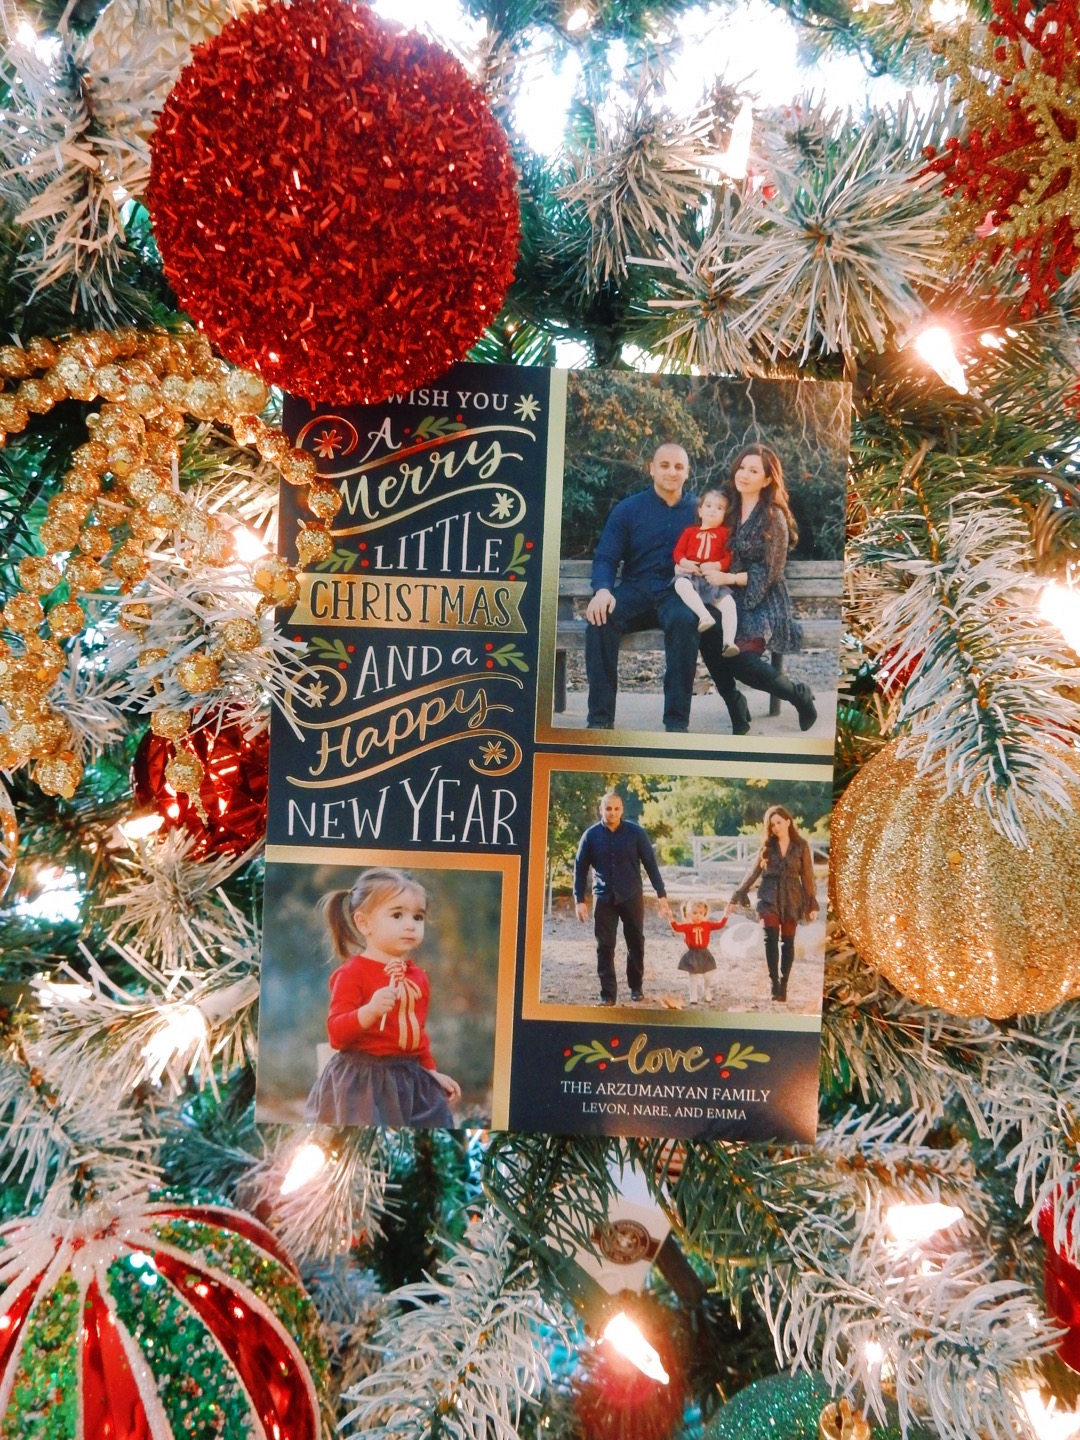 Holiday Magic with Shutterfly – Life with My Little One